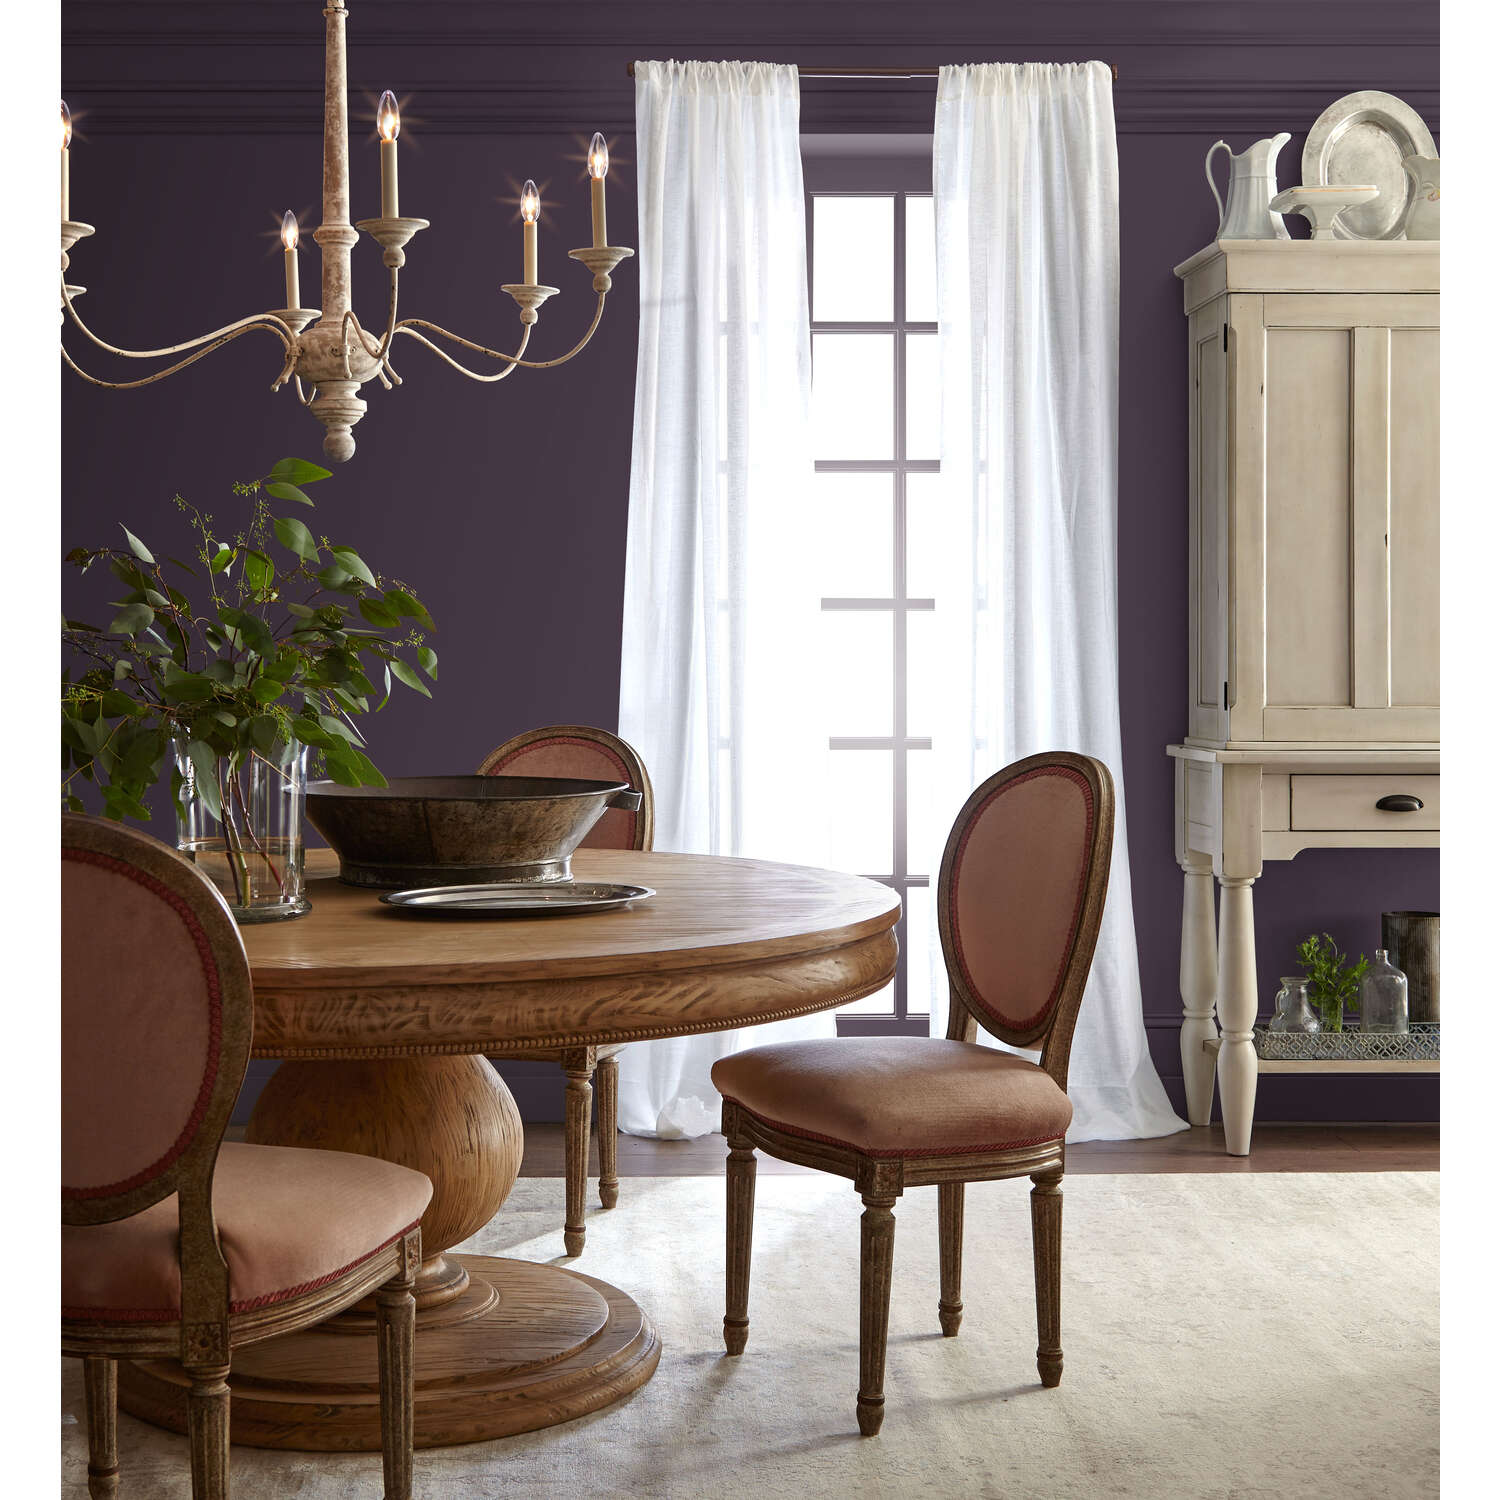 Magnolia Home  by Joanna Gaines  Satin  M  Acrylic  1 gal. Paint  Plum Suede